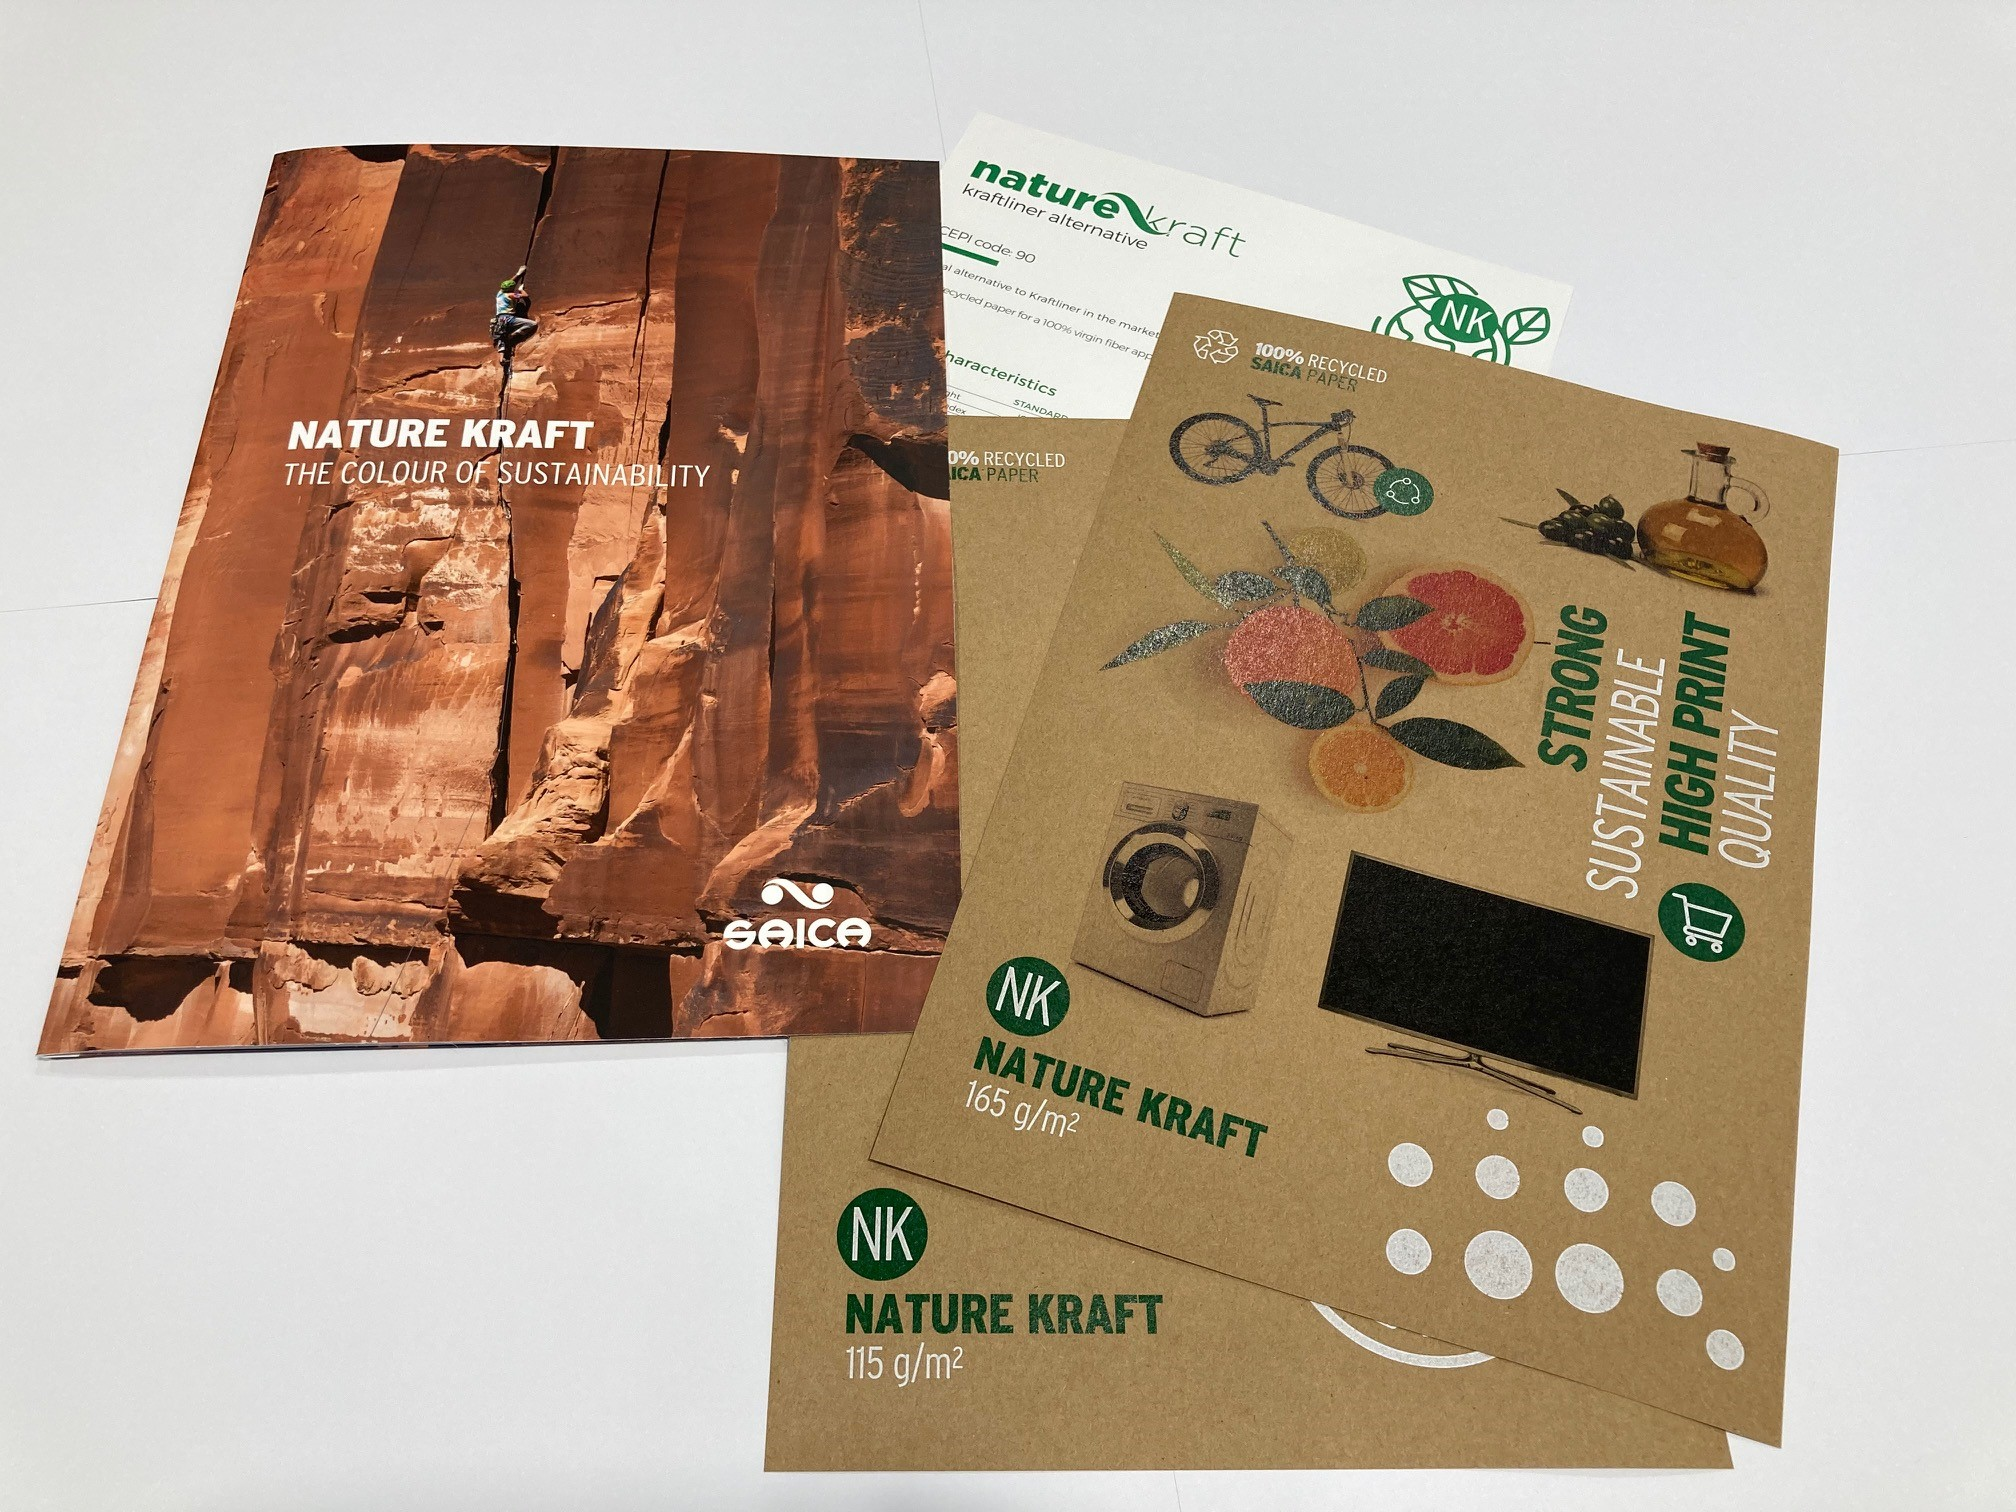 A sample of Nature Kraft new weights